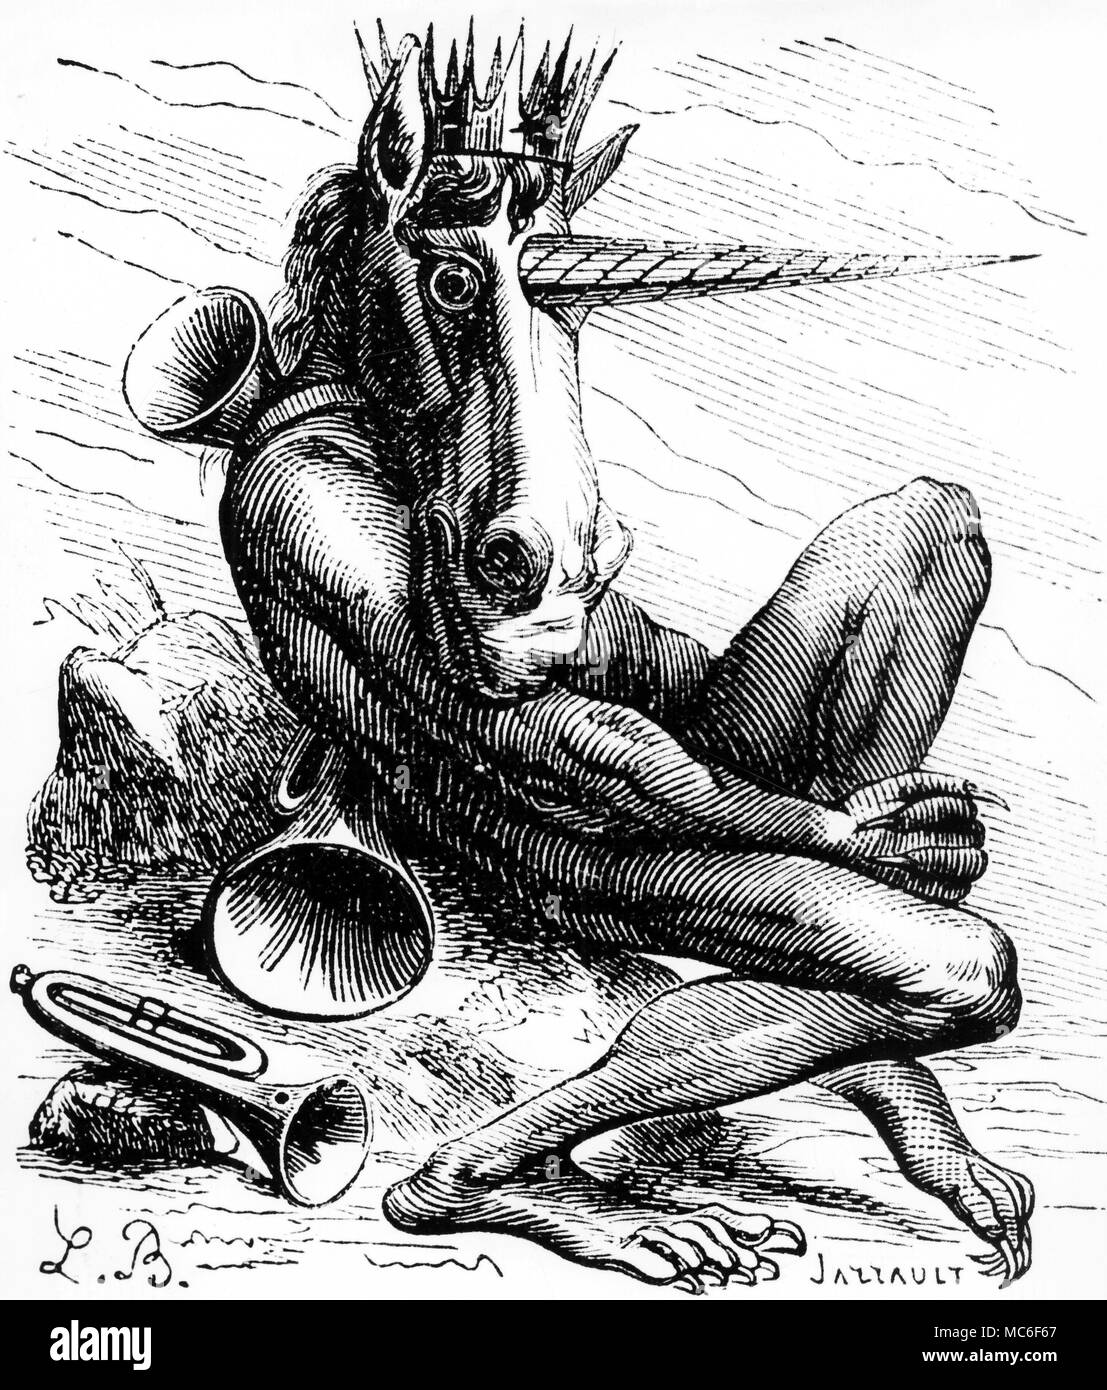 The demon Flauros, tiger-headed and a remnant o the ancient Egyptian pantheon - presumably of the cat-headed Bastet.  Woodengraving from Collin de Plancy, Dictionnaire Infernal, 1863. - Stock Image